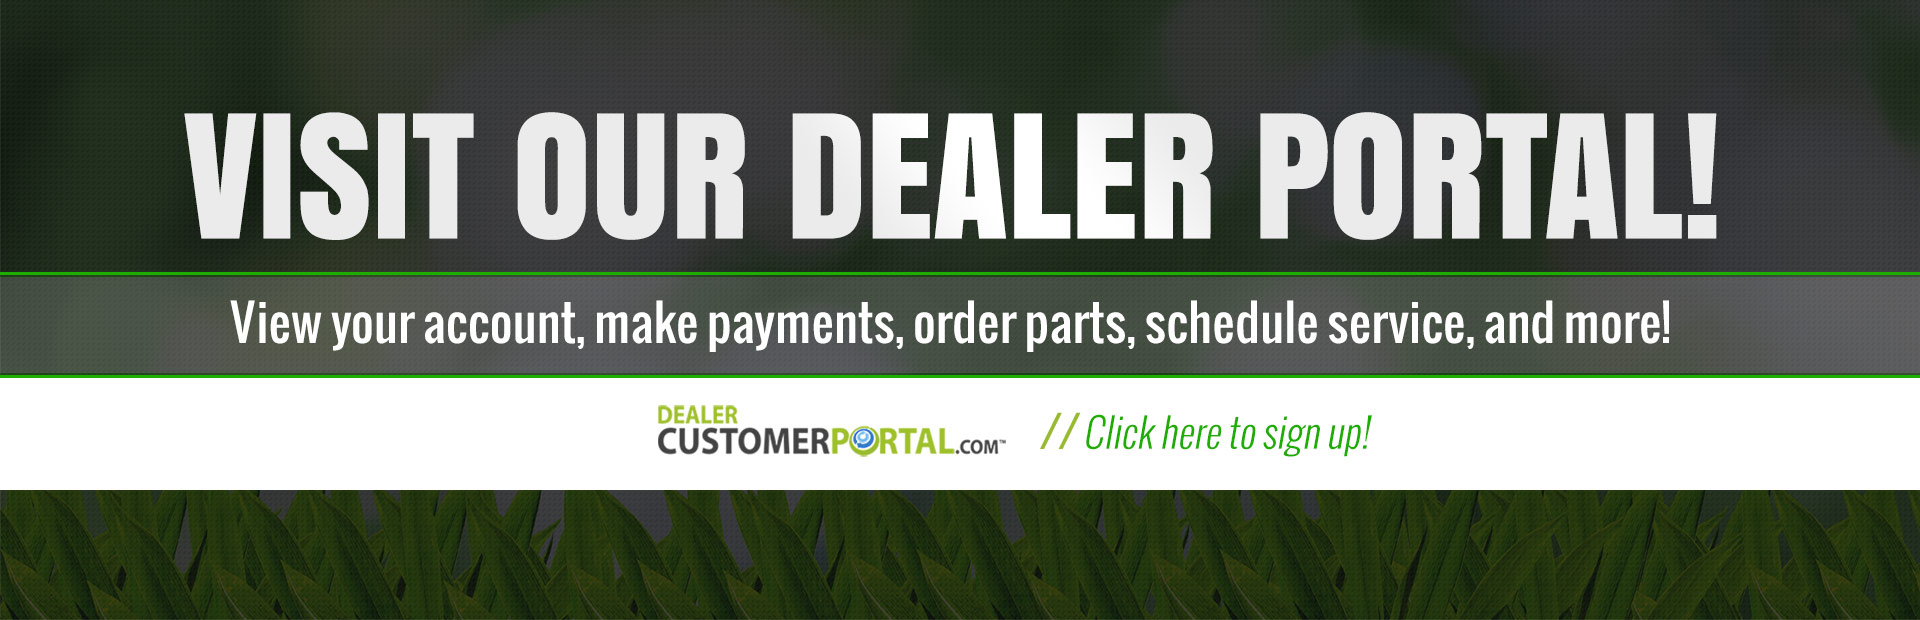 Visit our dealer portal: View your account, make payments, order parts, schedule service, and more!